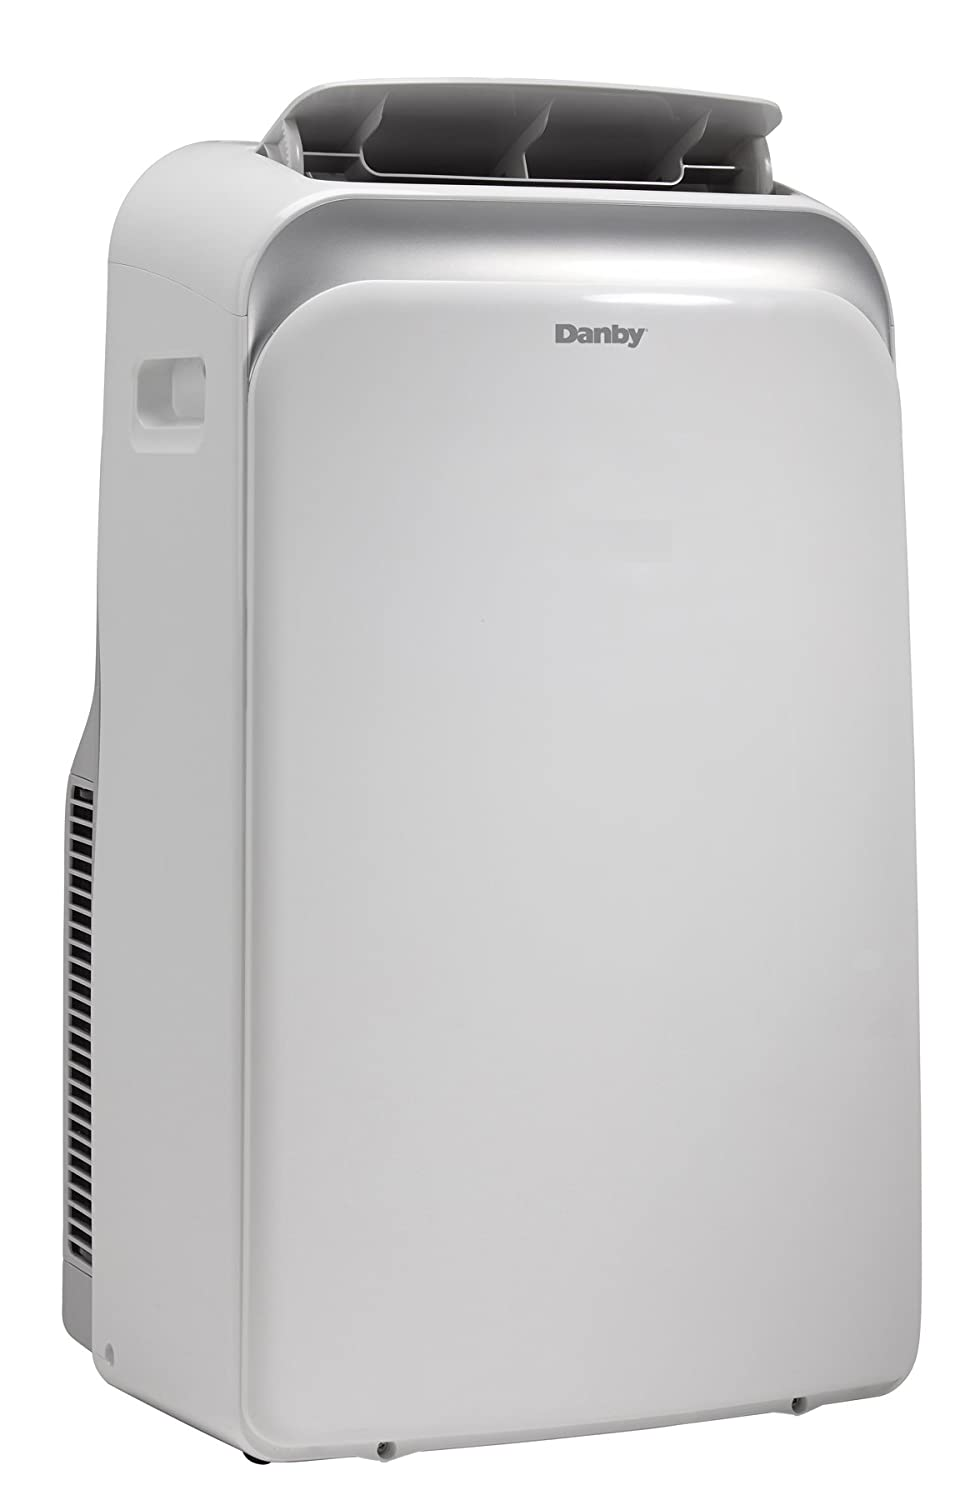 Danby 12000 btu 3 in 1 portable air conditioner 12 000 btu for 12000 btu ac heater window unit